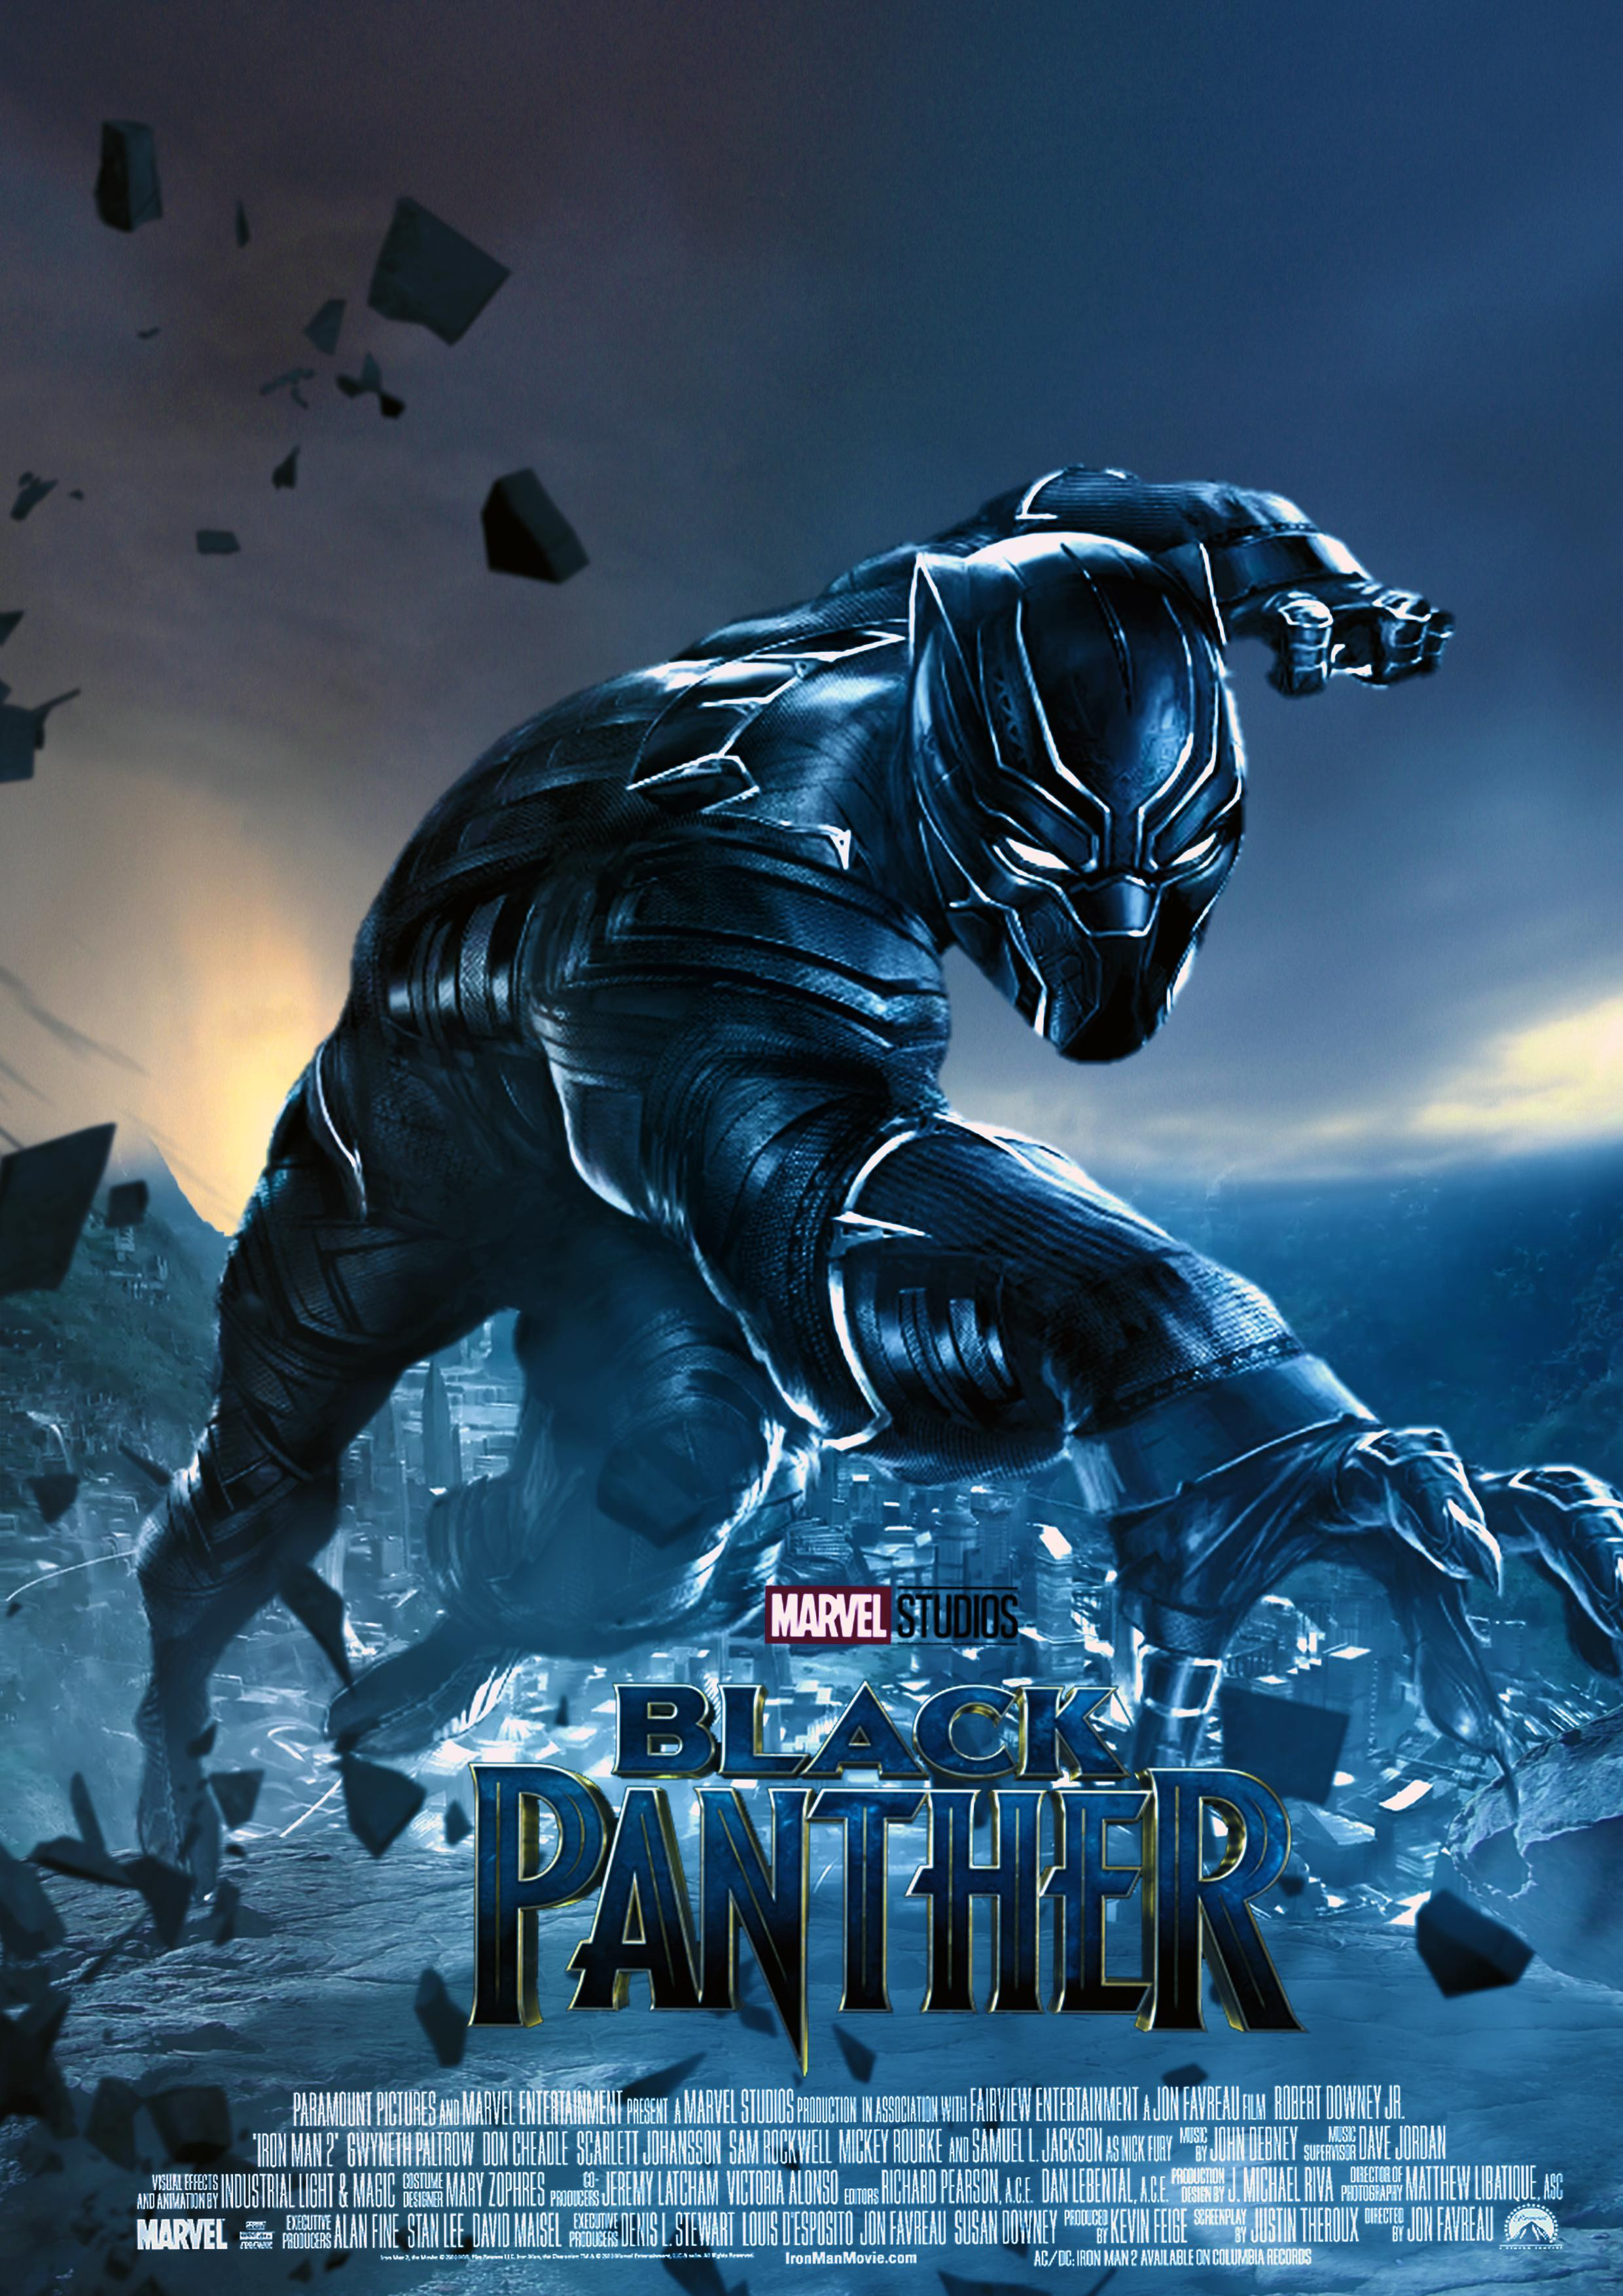 Wall Sticker Images ブラックパンサー(black Panther) 田舎に住んでる映画ヲタク